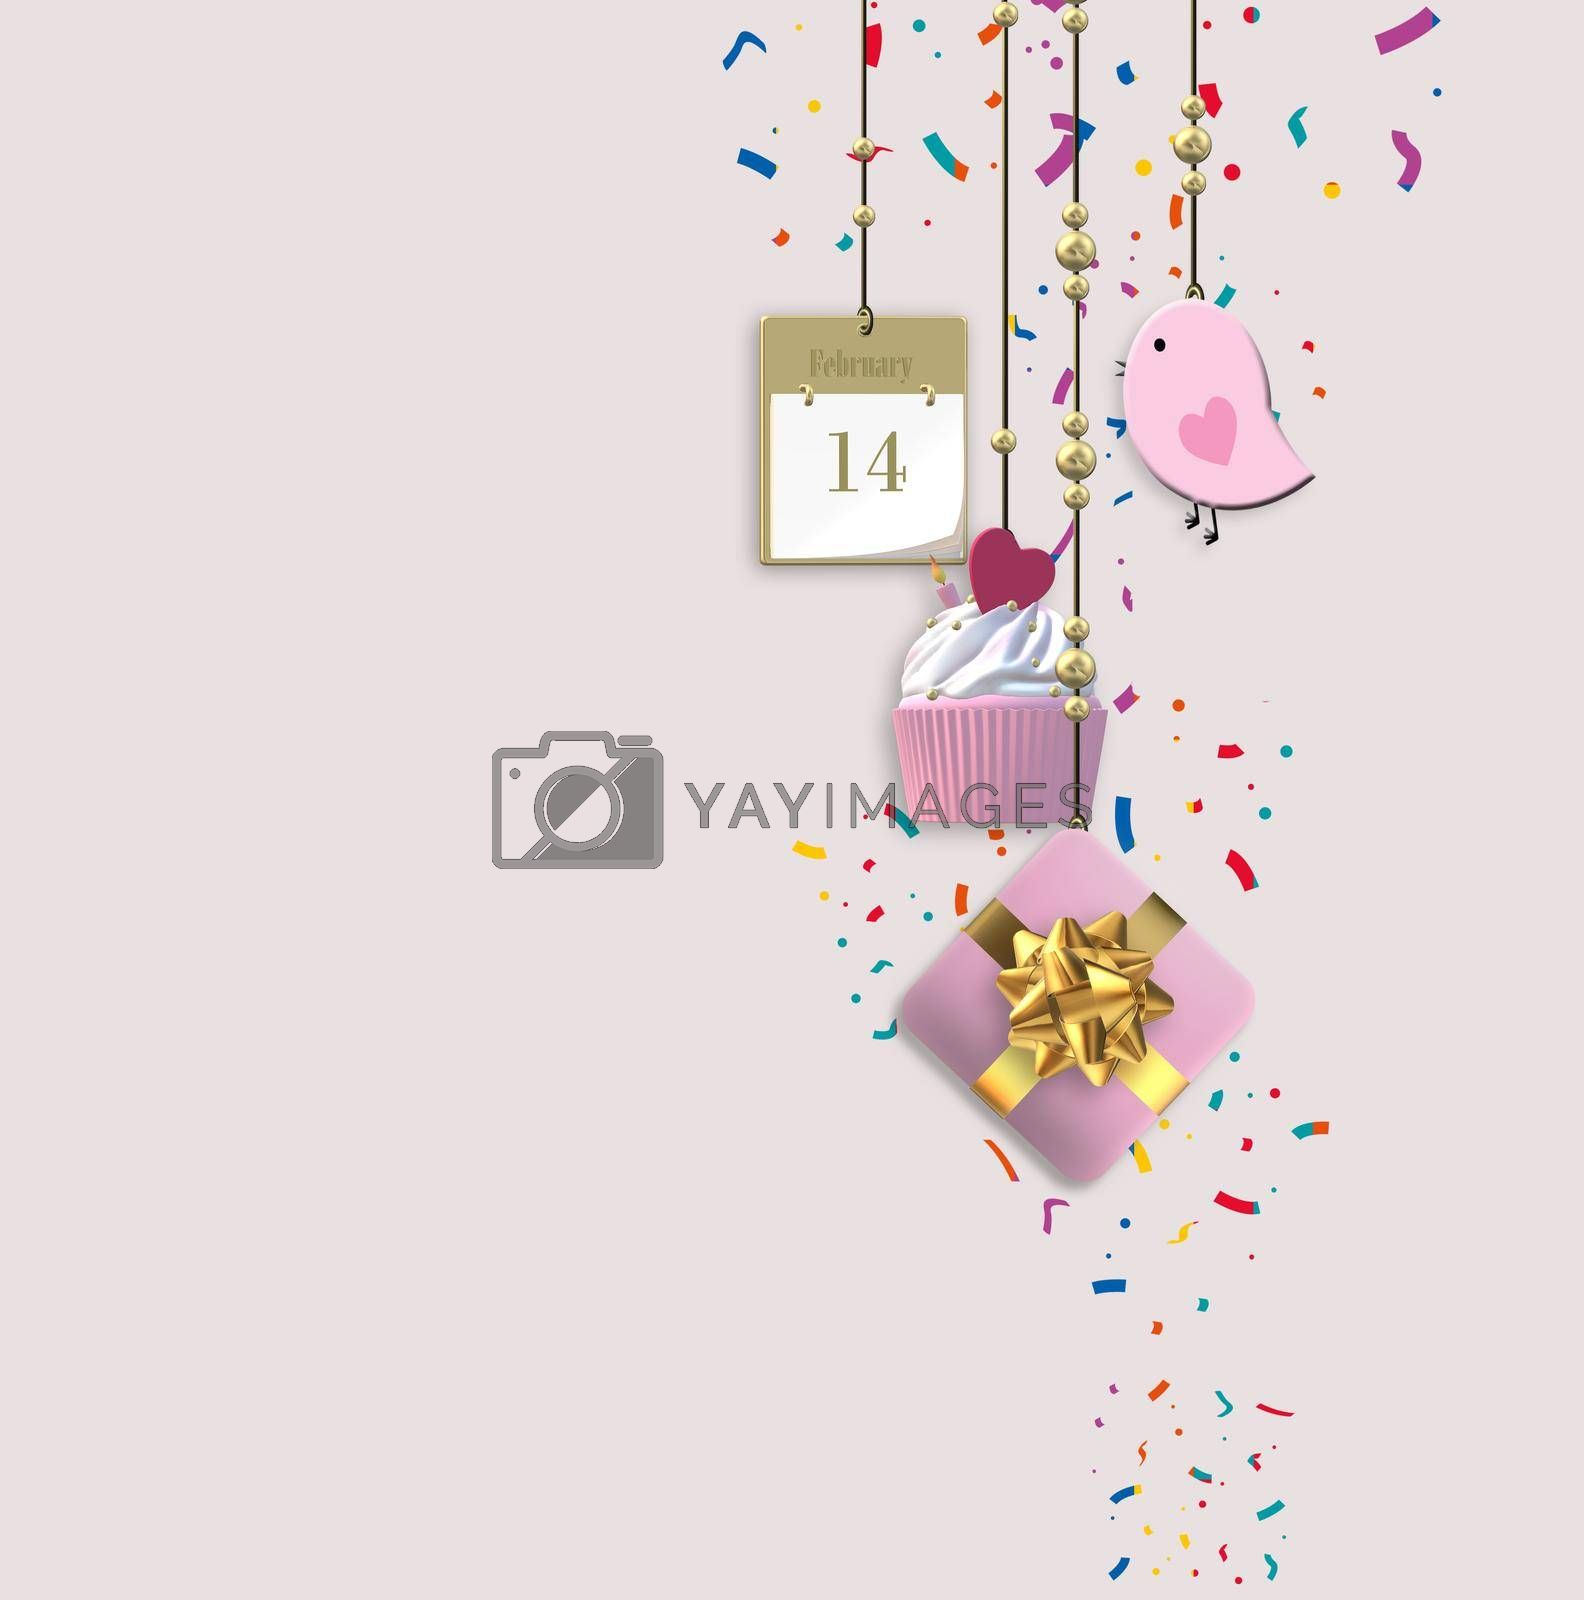 Cute Valentine's card. Hanging heart, gift box, cup cake on pink background. Love, wedding, birthday, Valentin's card. 3D illustration